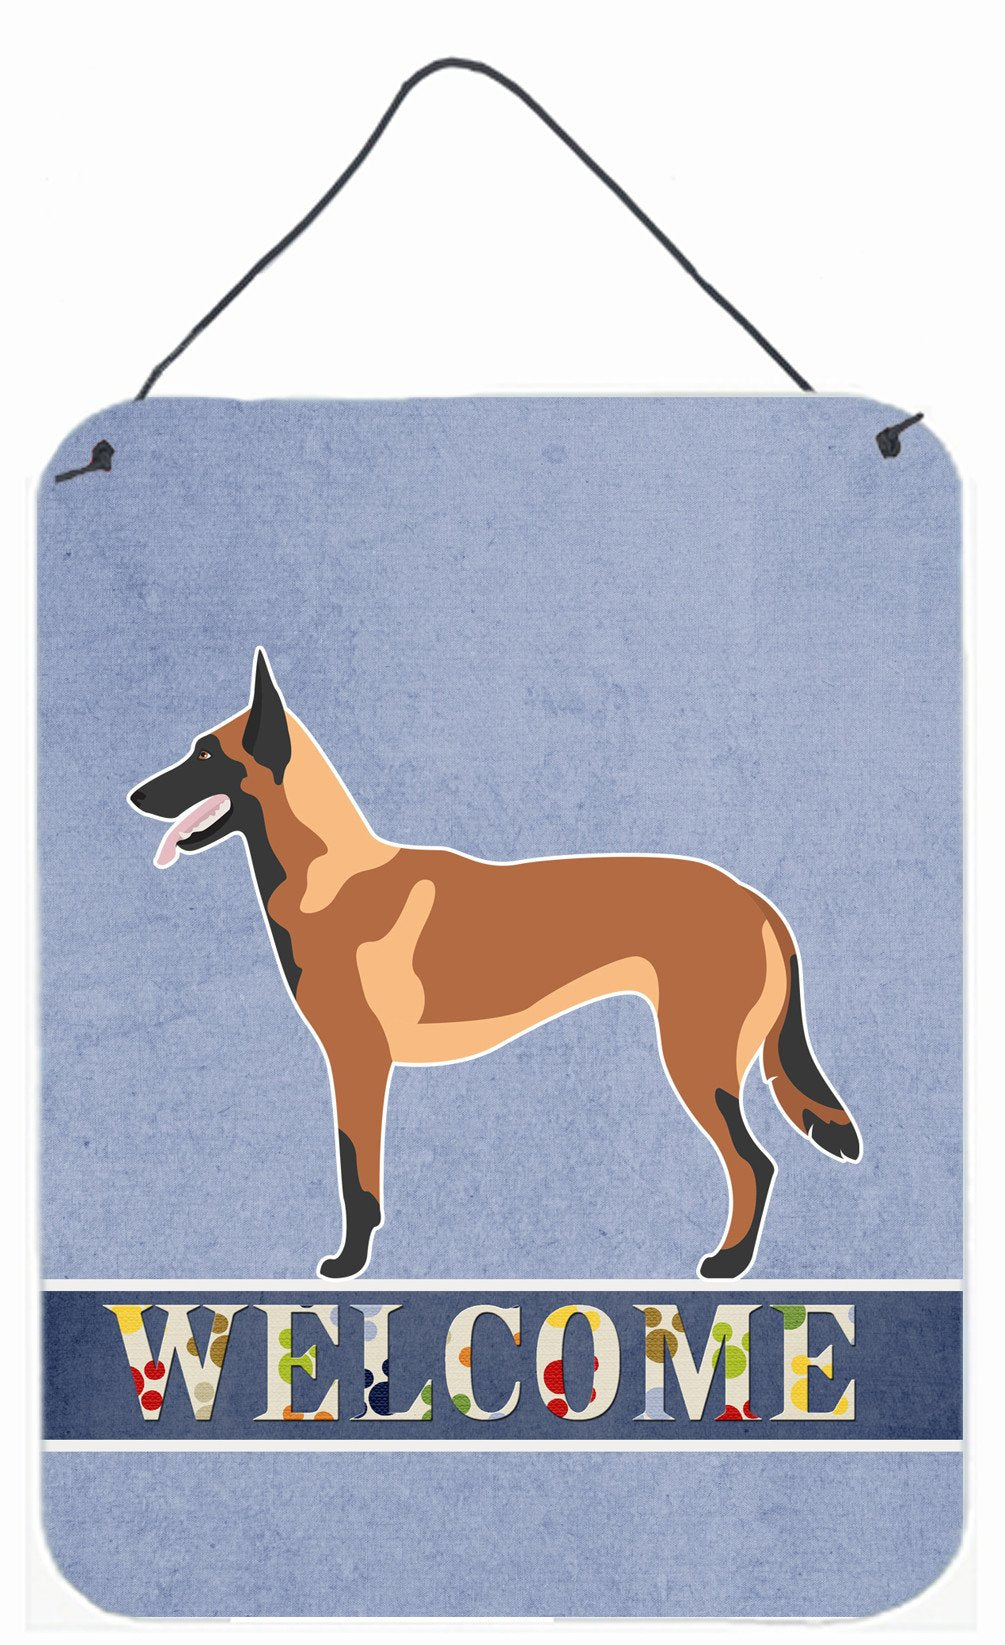 Malinois Belgian Shepherd  Wall or Door Hanging Prints BB8332DS1216 by Caroline's Treasures